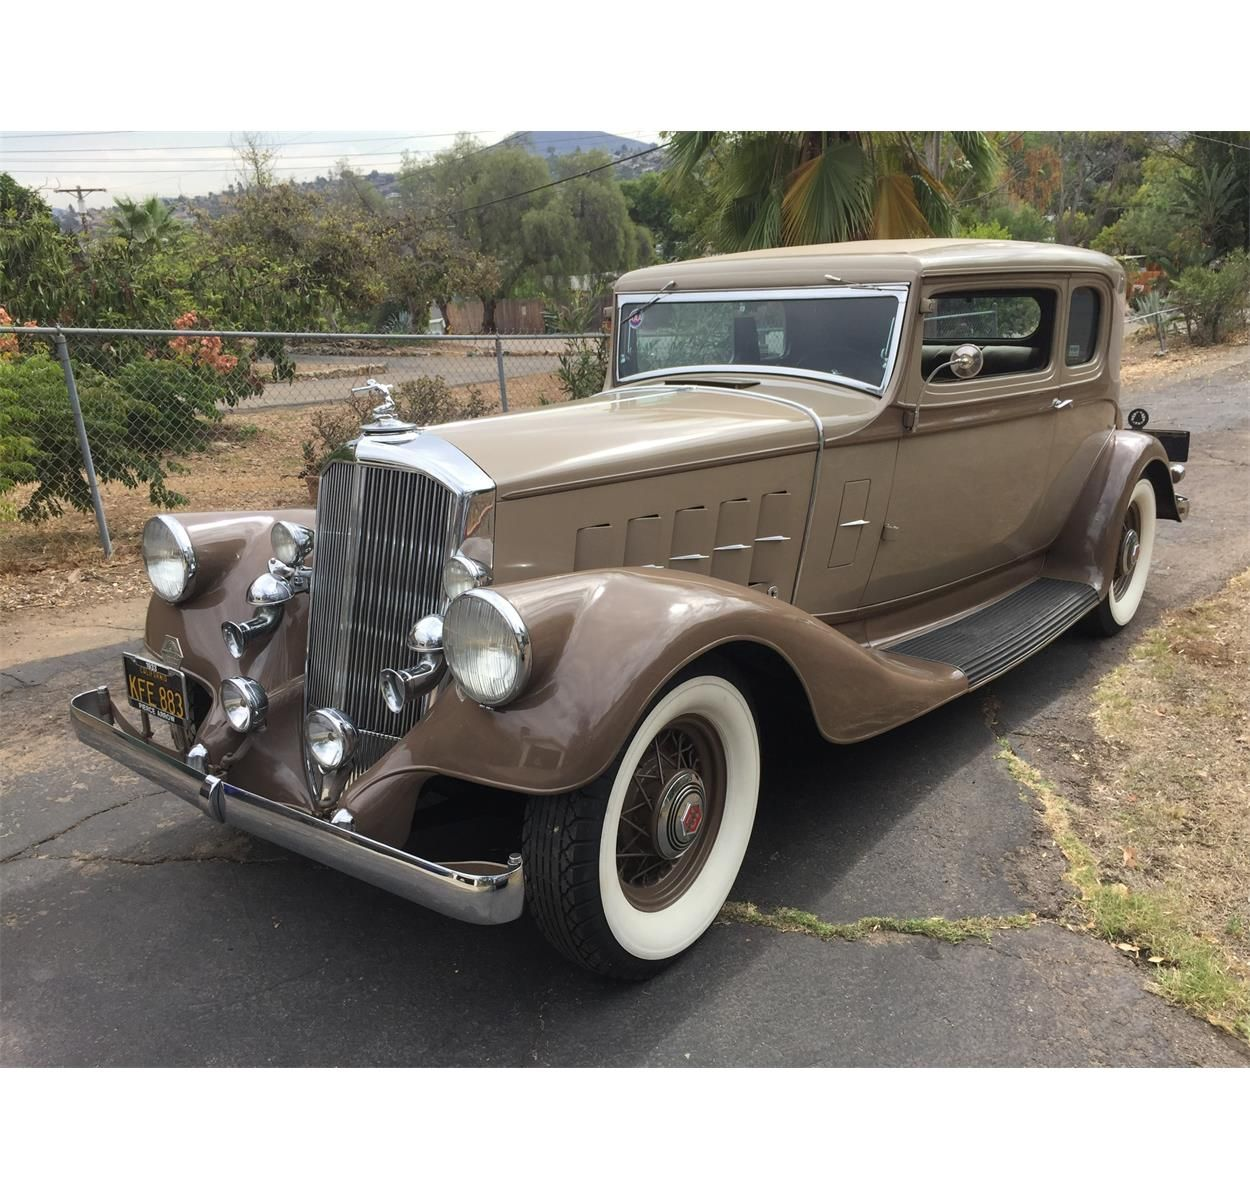 33 Pierce Arrow 1236 A Beautiful Car With A Cool Story In The